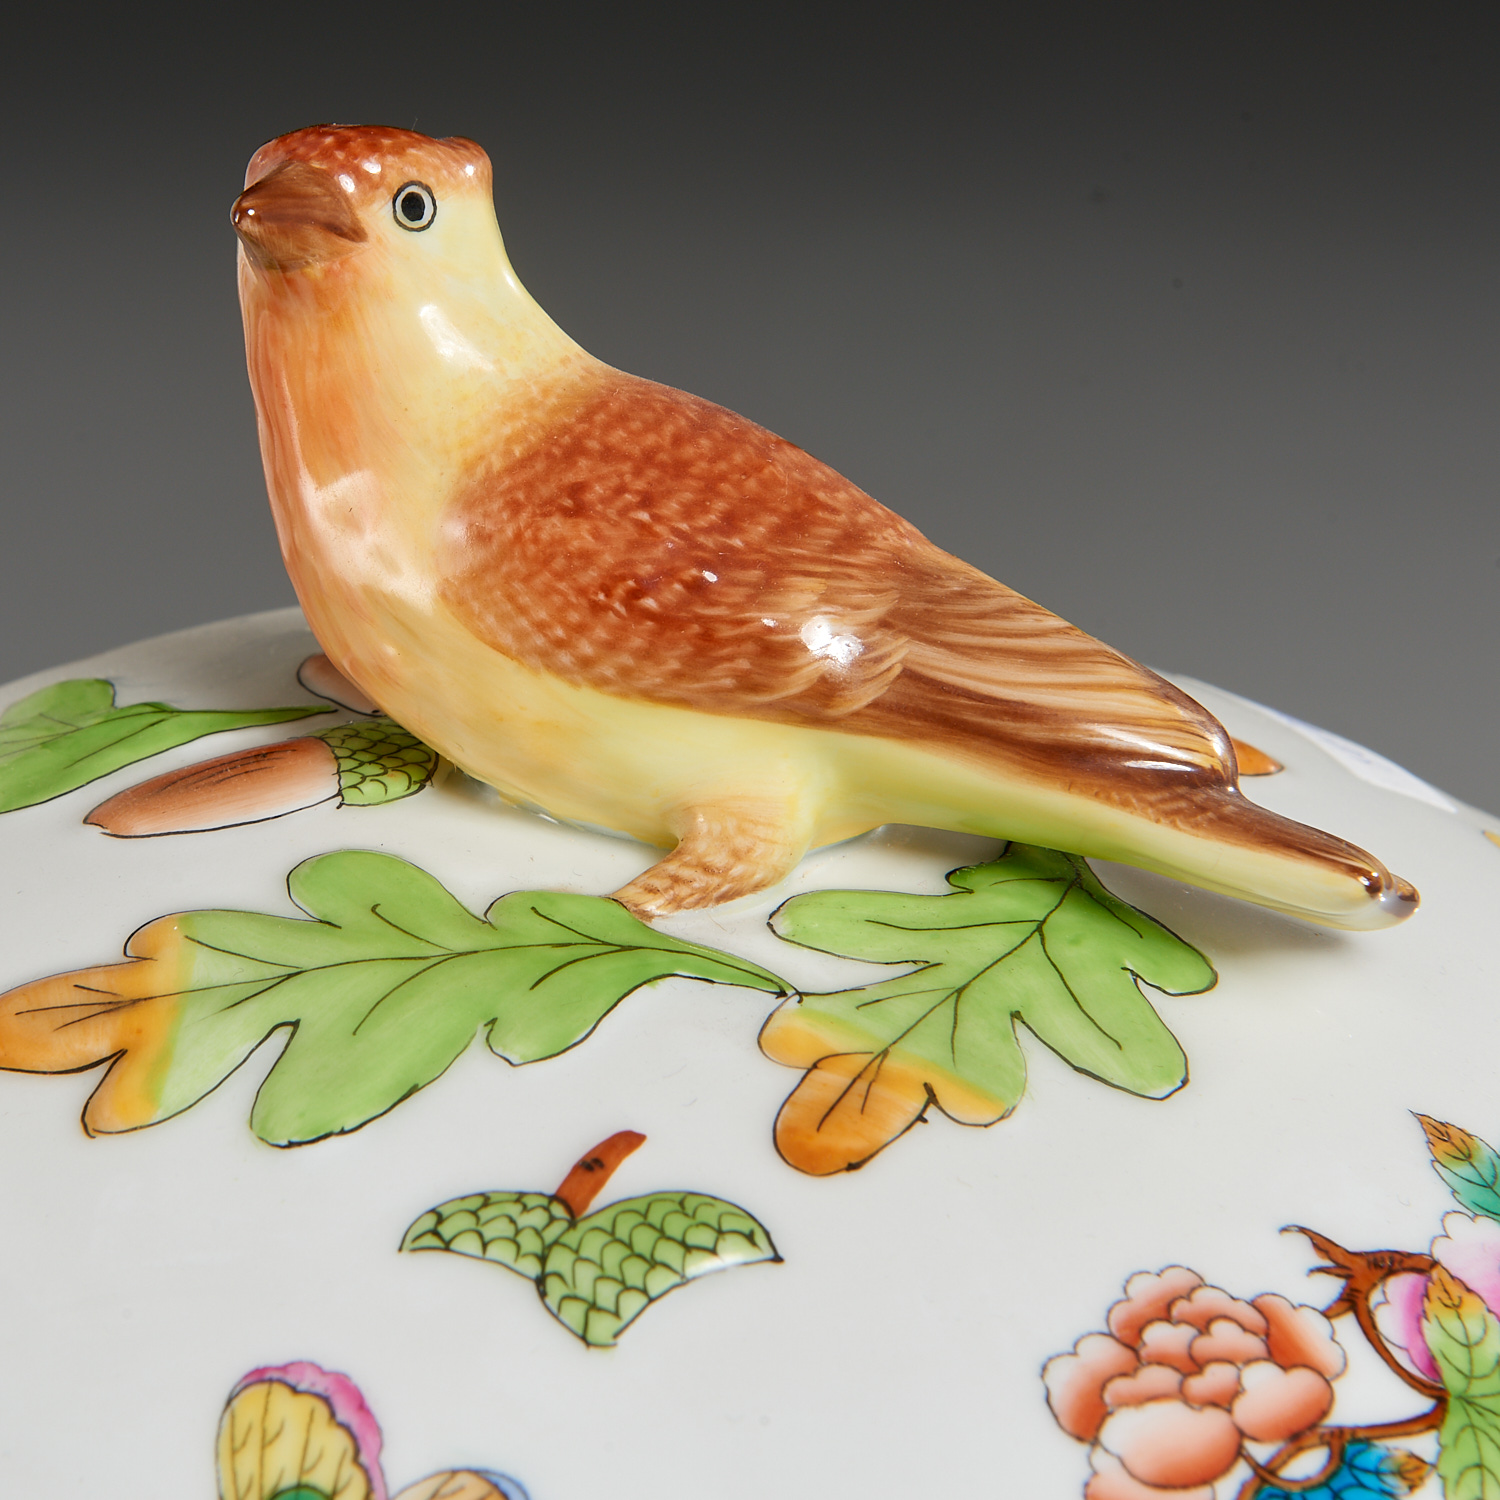 Lot 55 - Herend Porcelain Tureen, Tray, and Dish